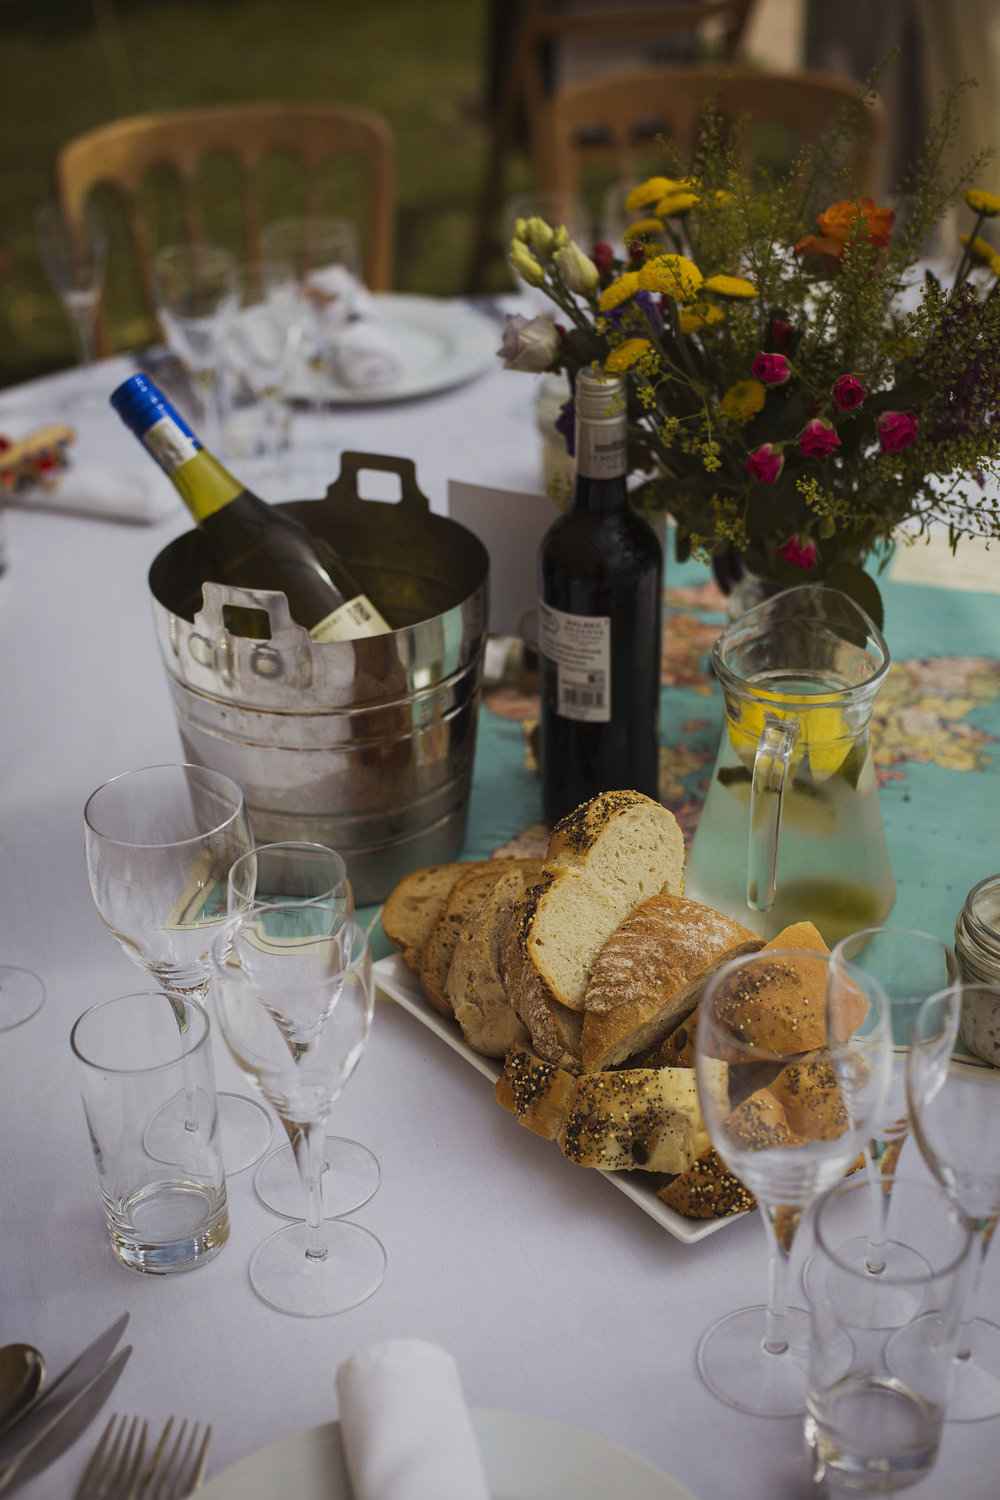 bread and wine on wedding breakfast table at usk castle